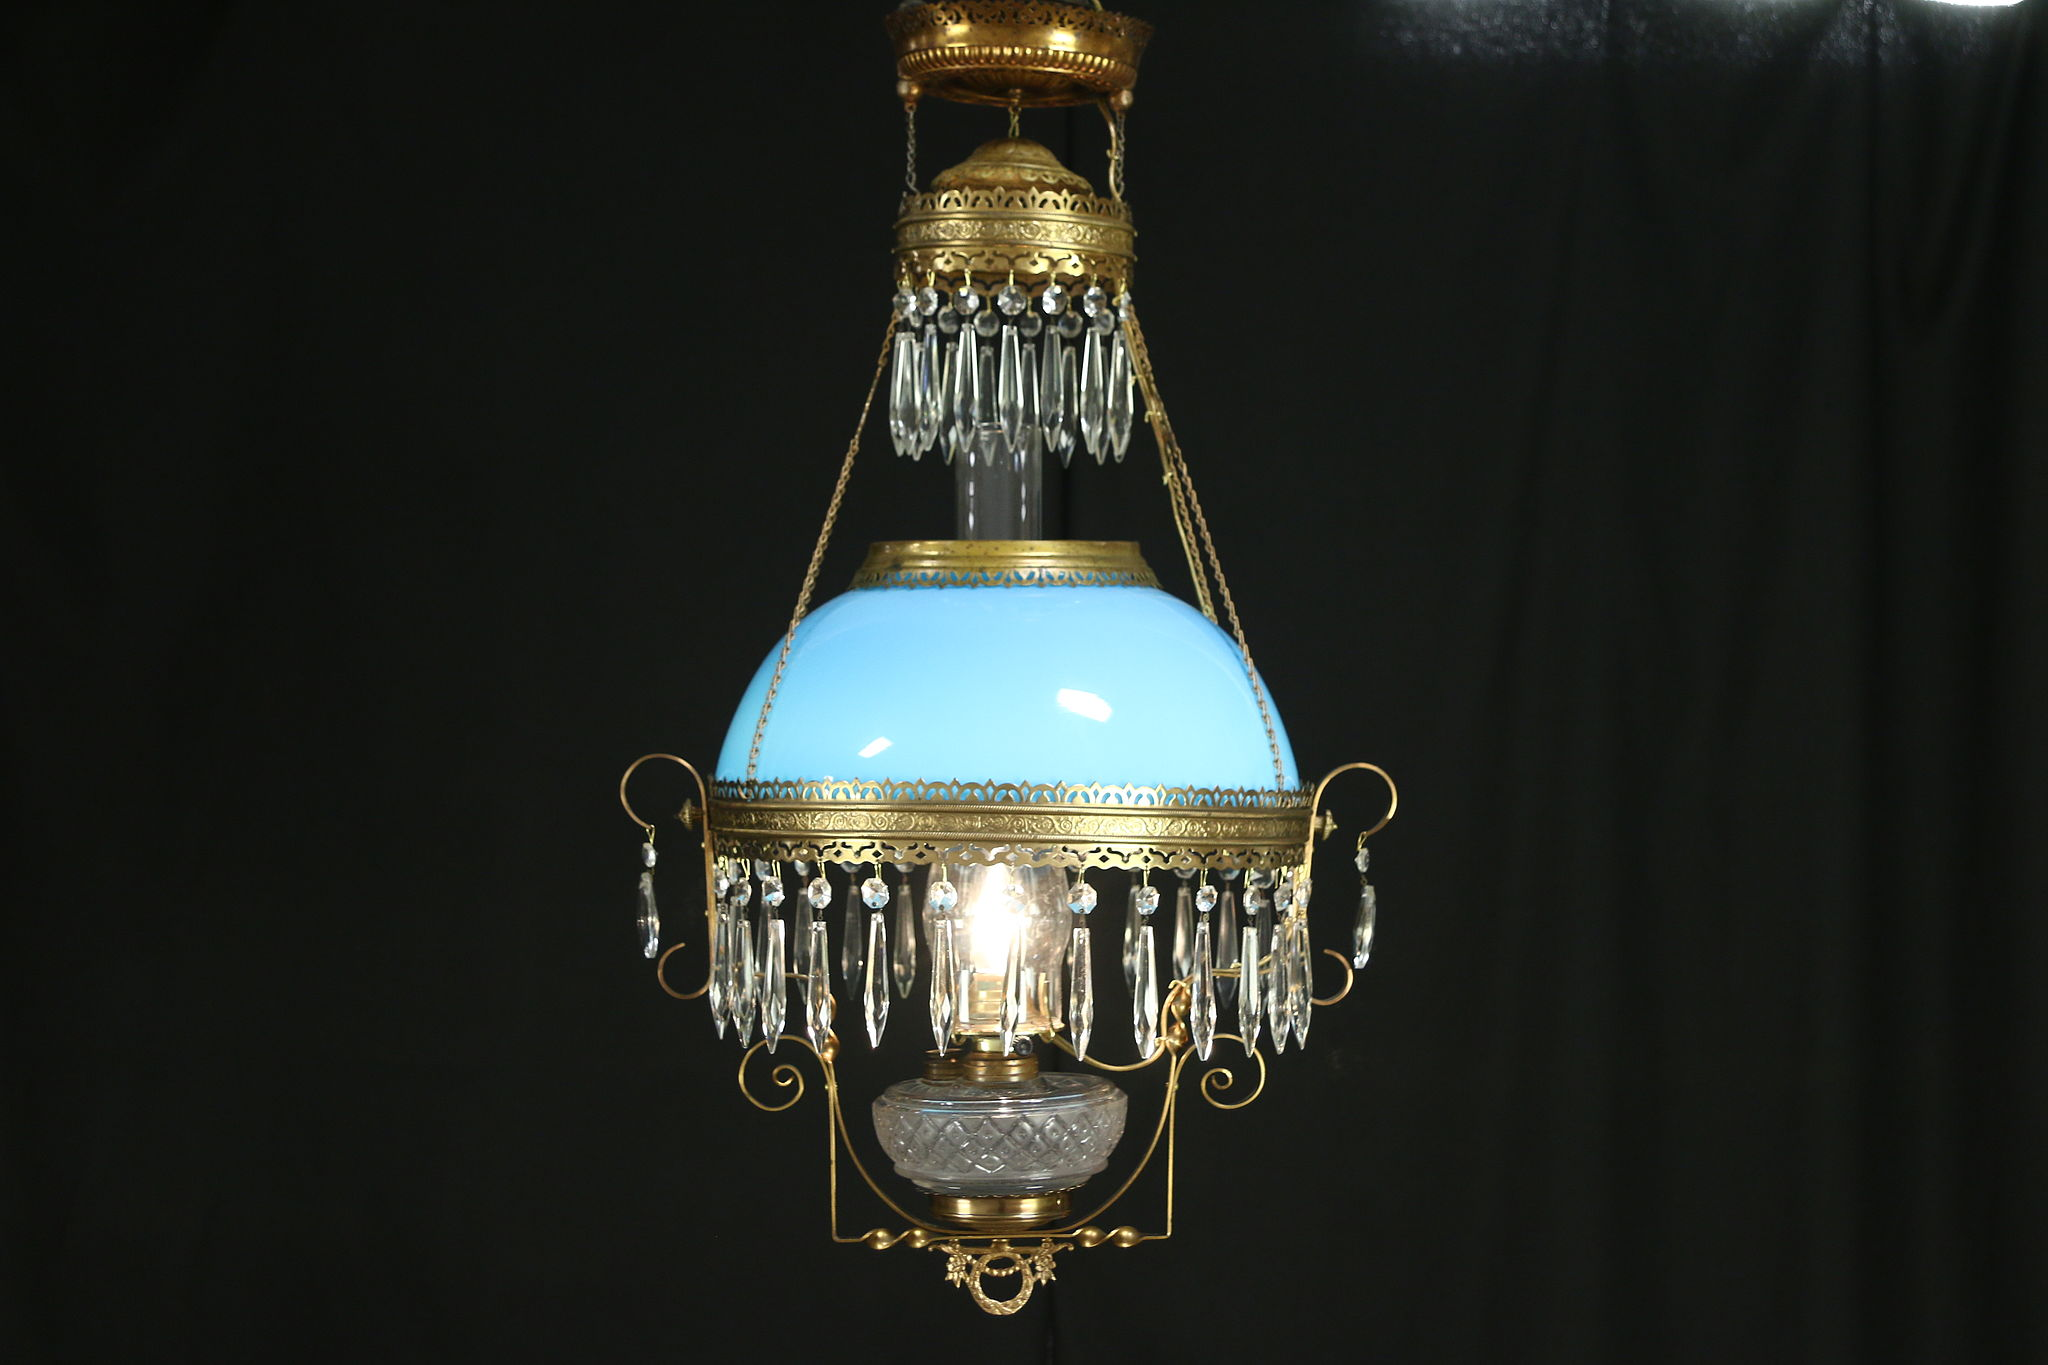 Victorian Antique Hanging Lamp Or Chandelier Blue Art Glass Shade Electrified